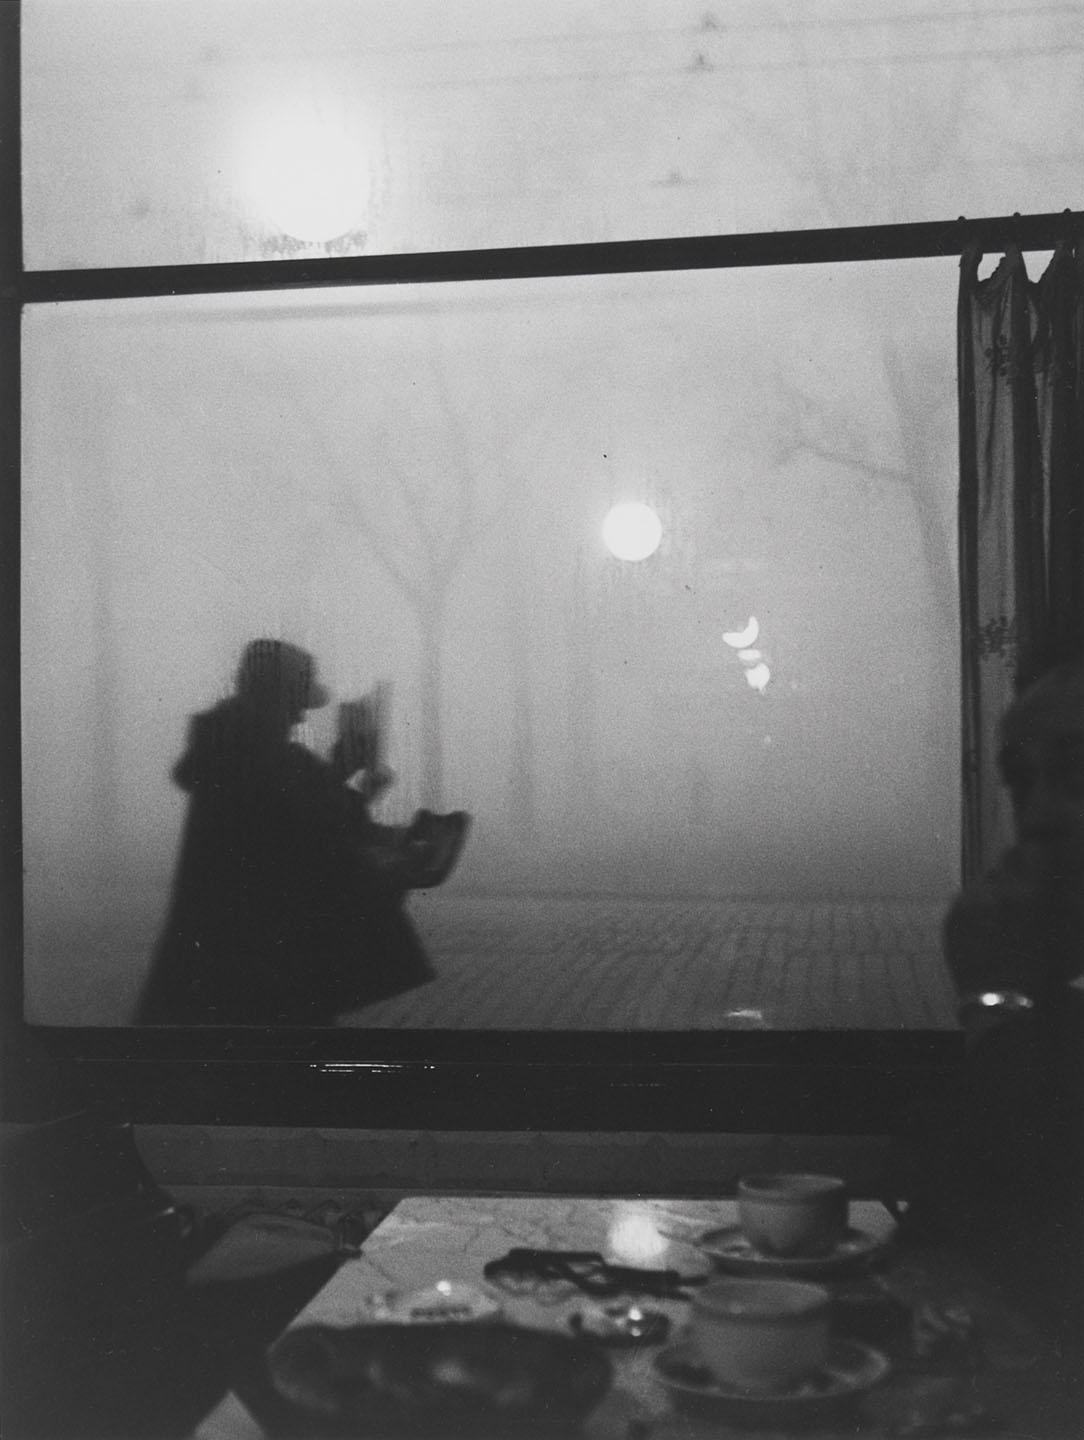 sabine-weiss-1924-france-facteur-a-lyon-1951-305-x-232-cm